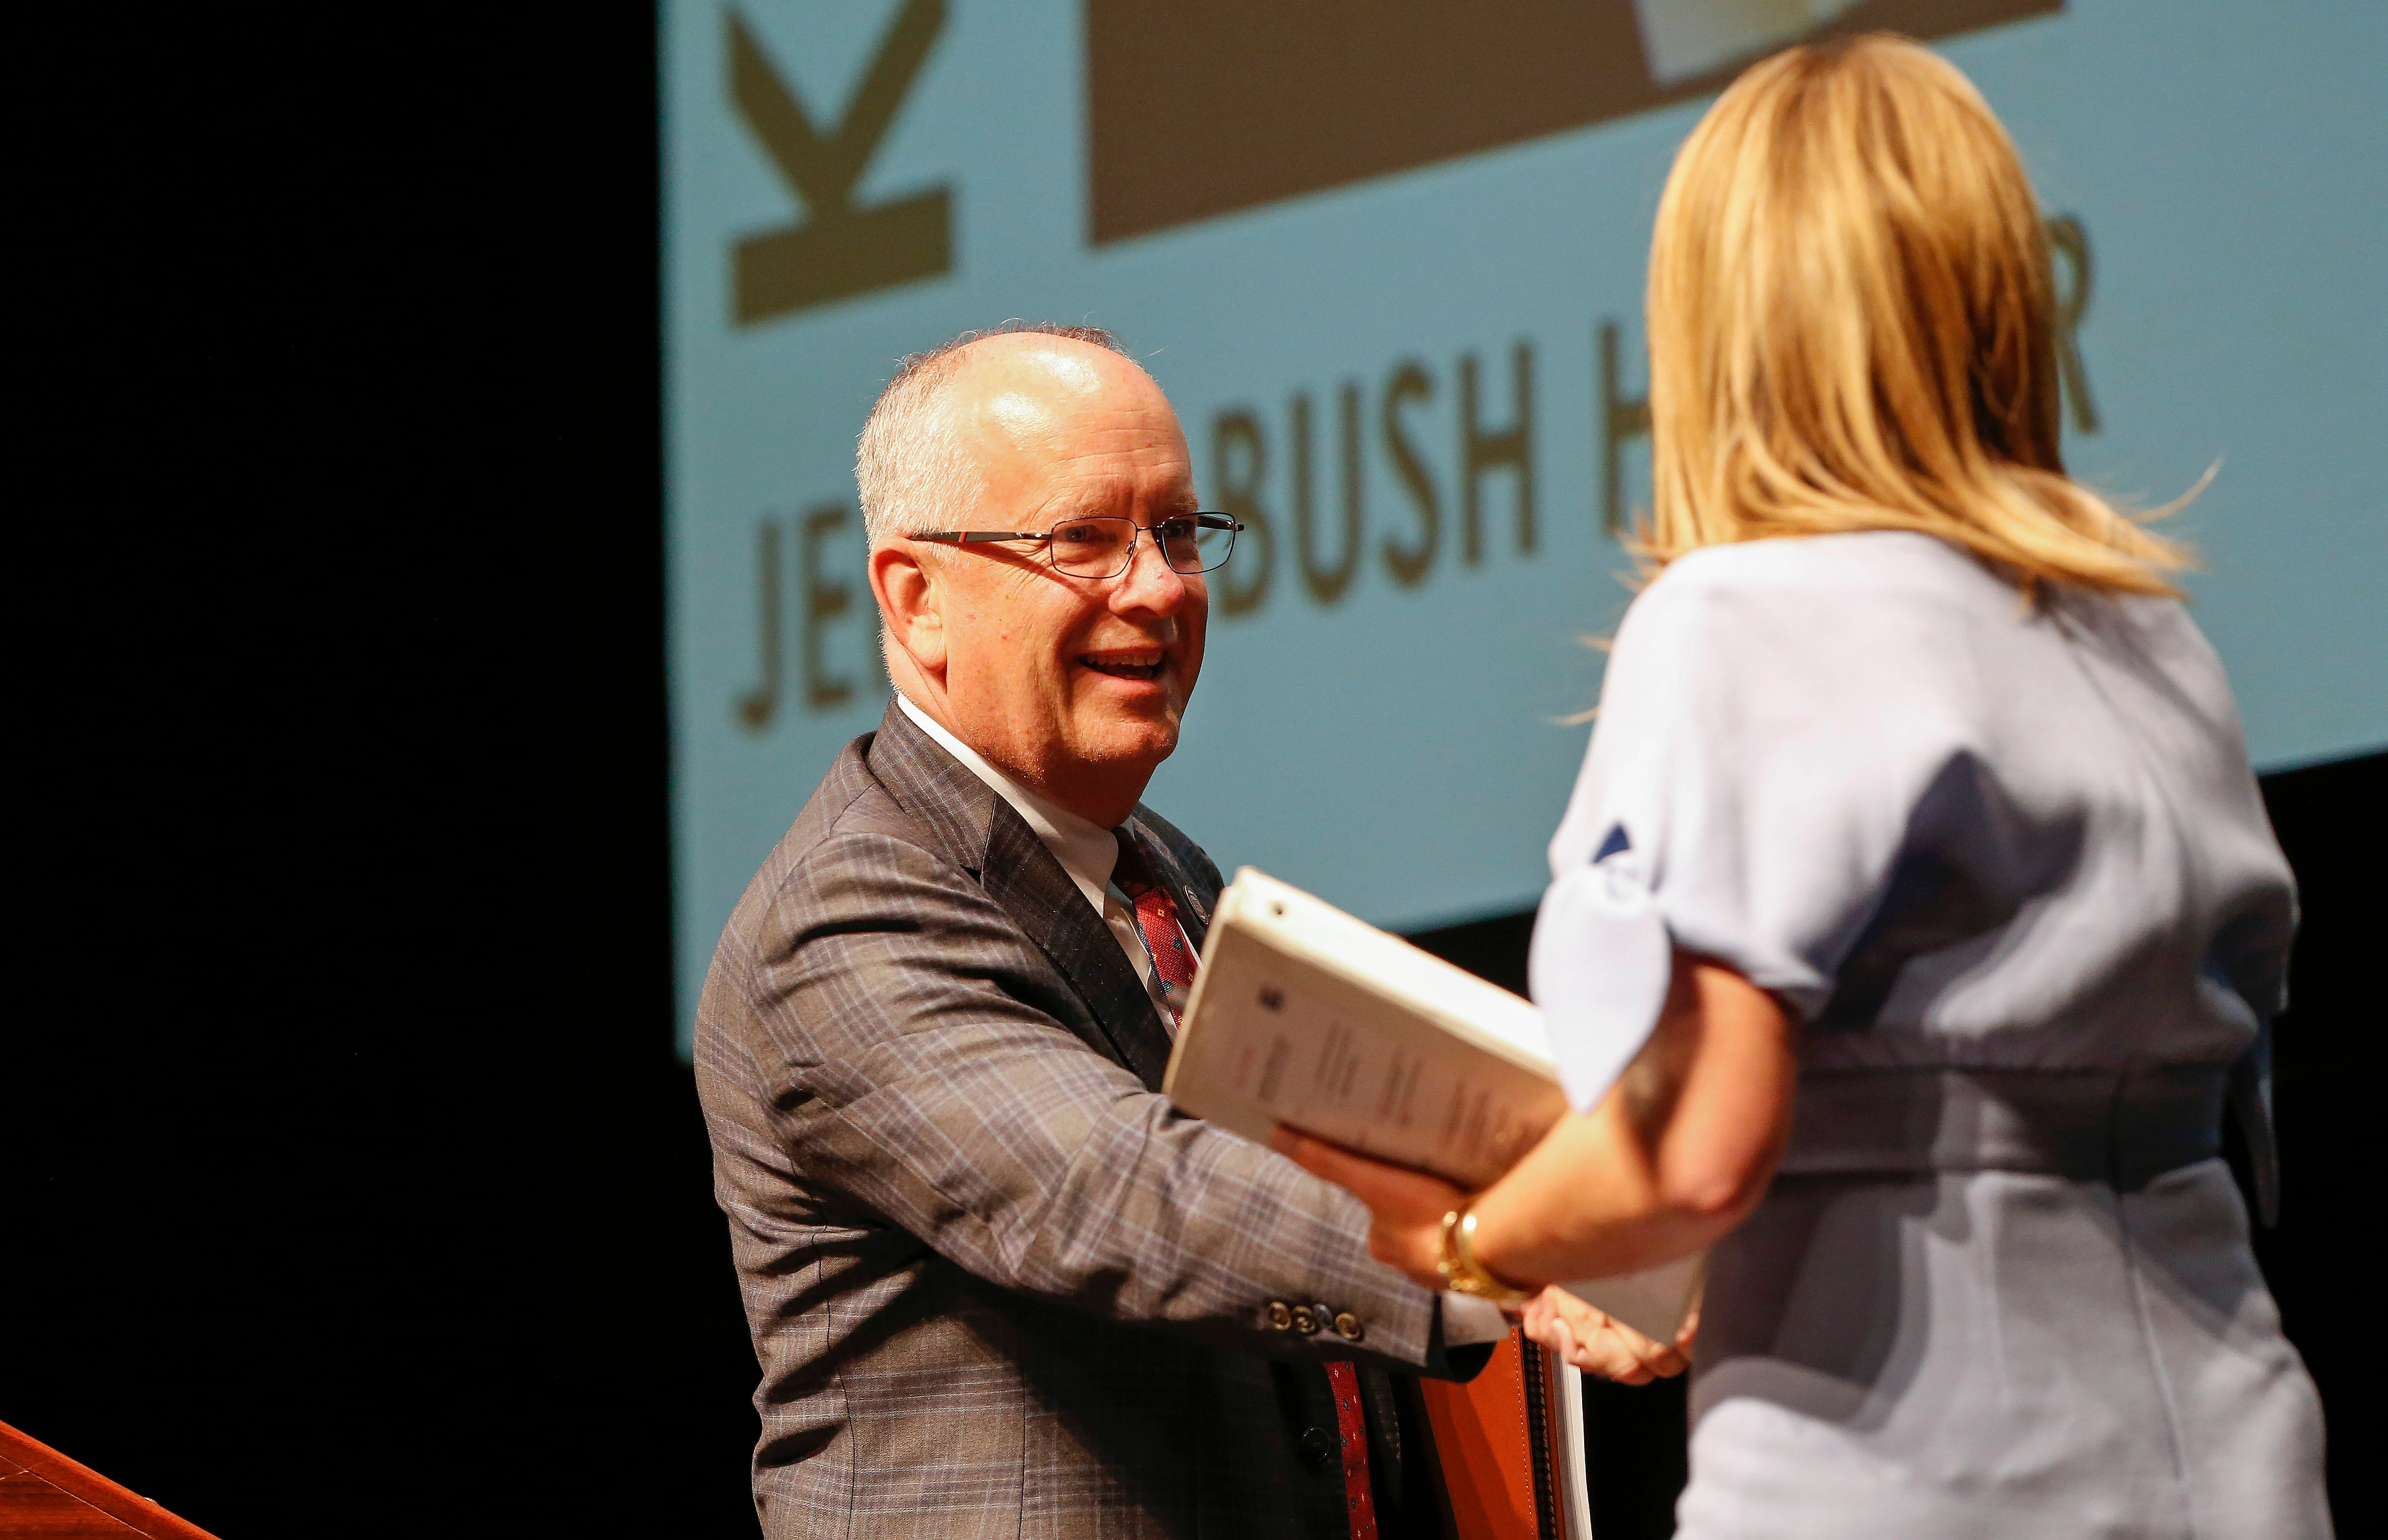 Missouri State University President Clif Smart shakes hands with Jenna Bush Hager who presented the keynote speech during the Public Affairs Conference at the Juanita K. Hammons Hall for the Performing Arts on Tuesday, Sep. 25, 2018.